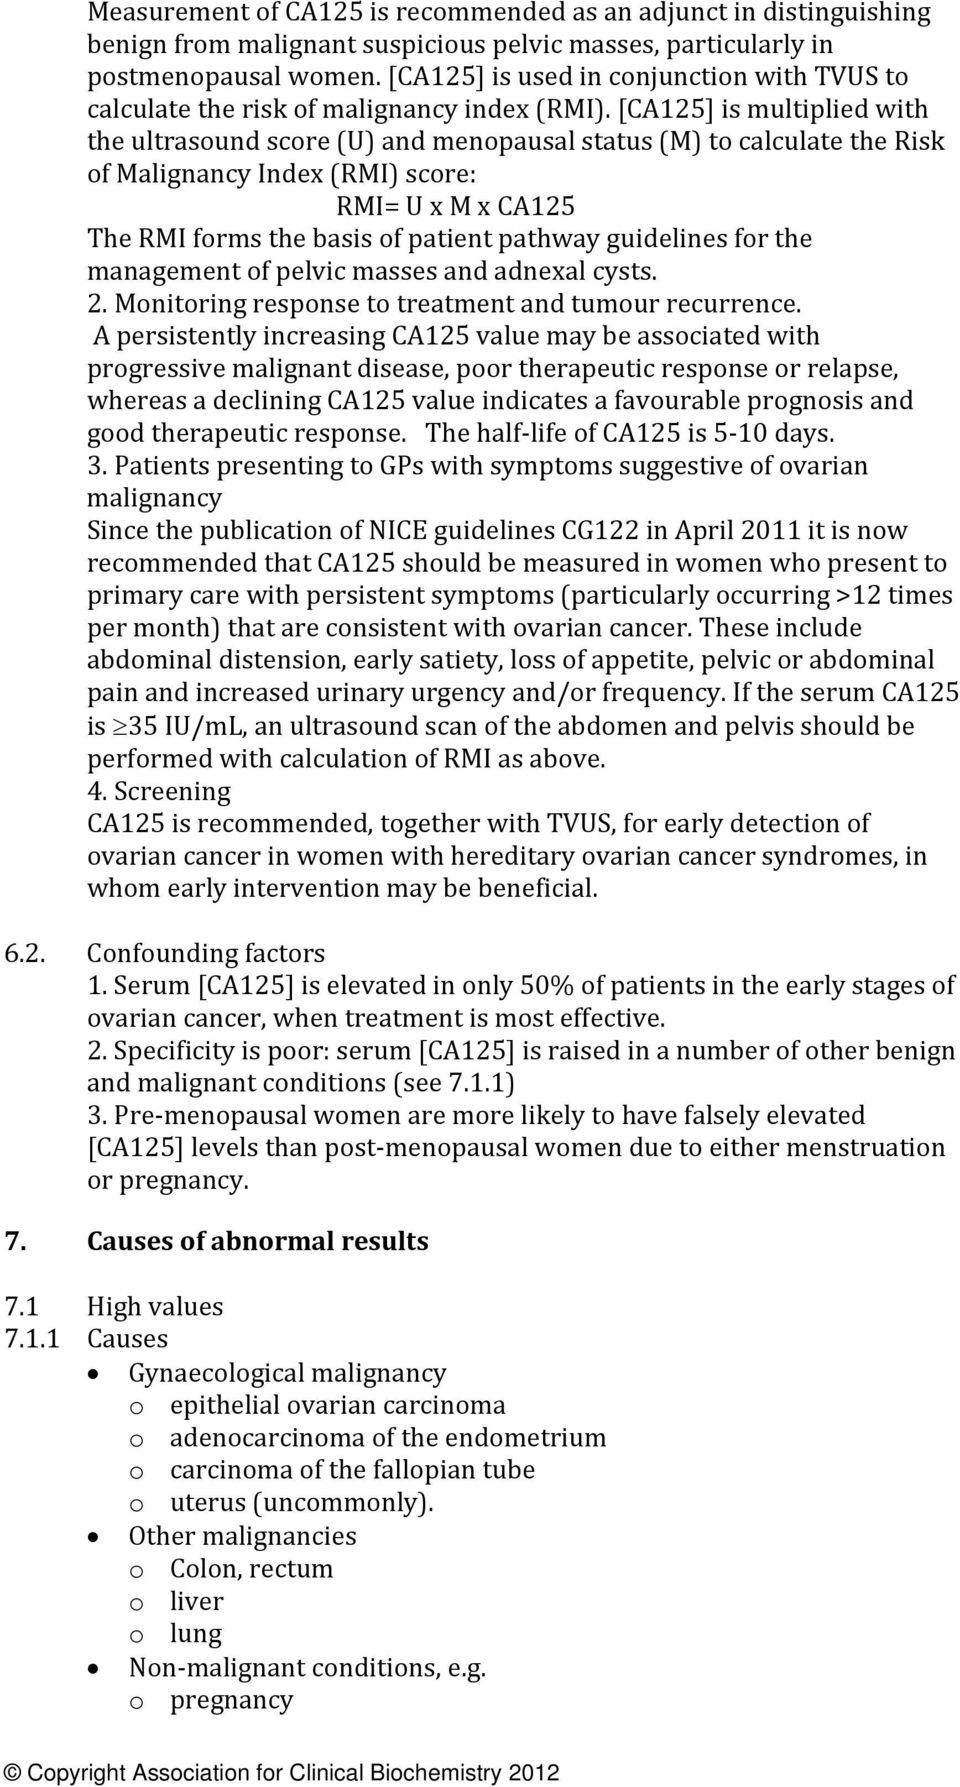 [CA125] is multiplied with the ultrasound score (U) and menopausal status (M) to calculate the Risk of Malignancy Index (RMI) score: RMI= U x M x CA125 The RMI forms the basis of patient pathway